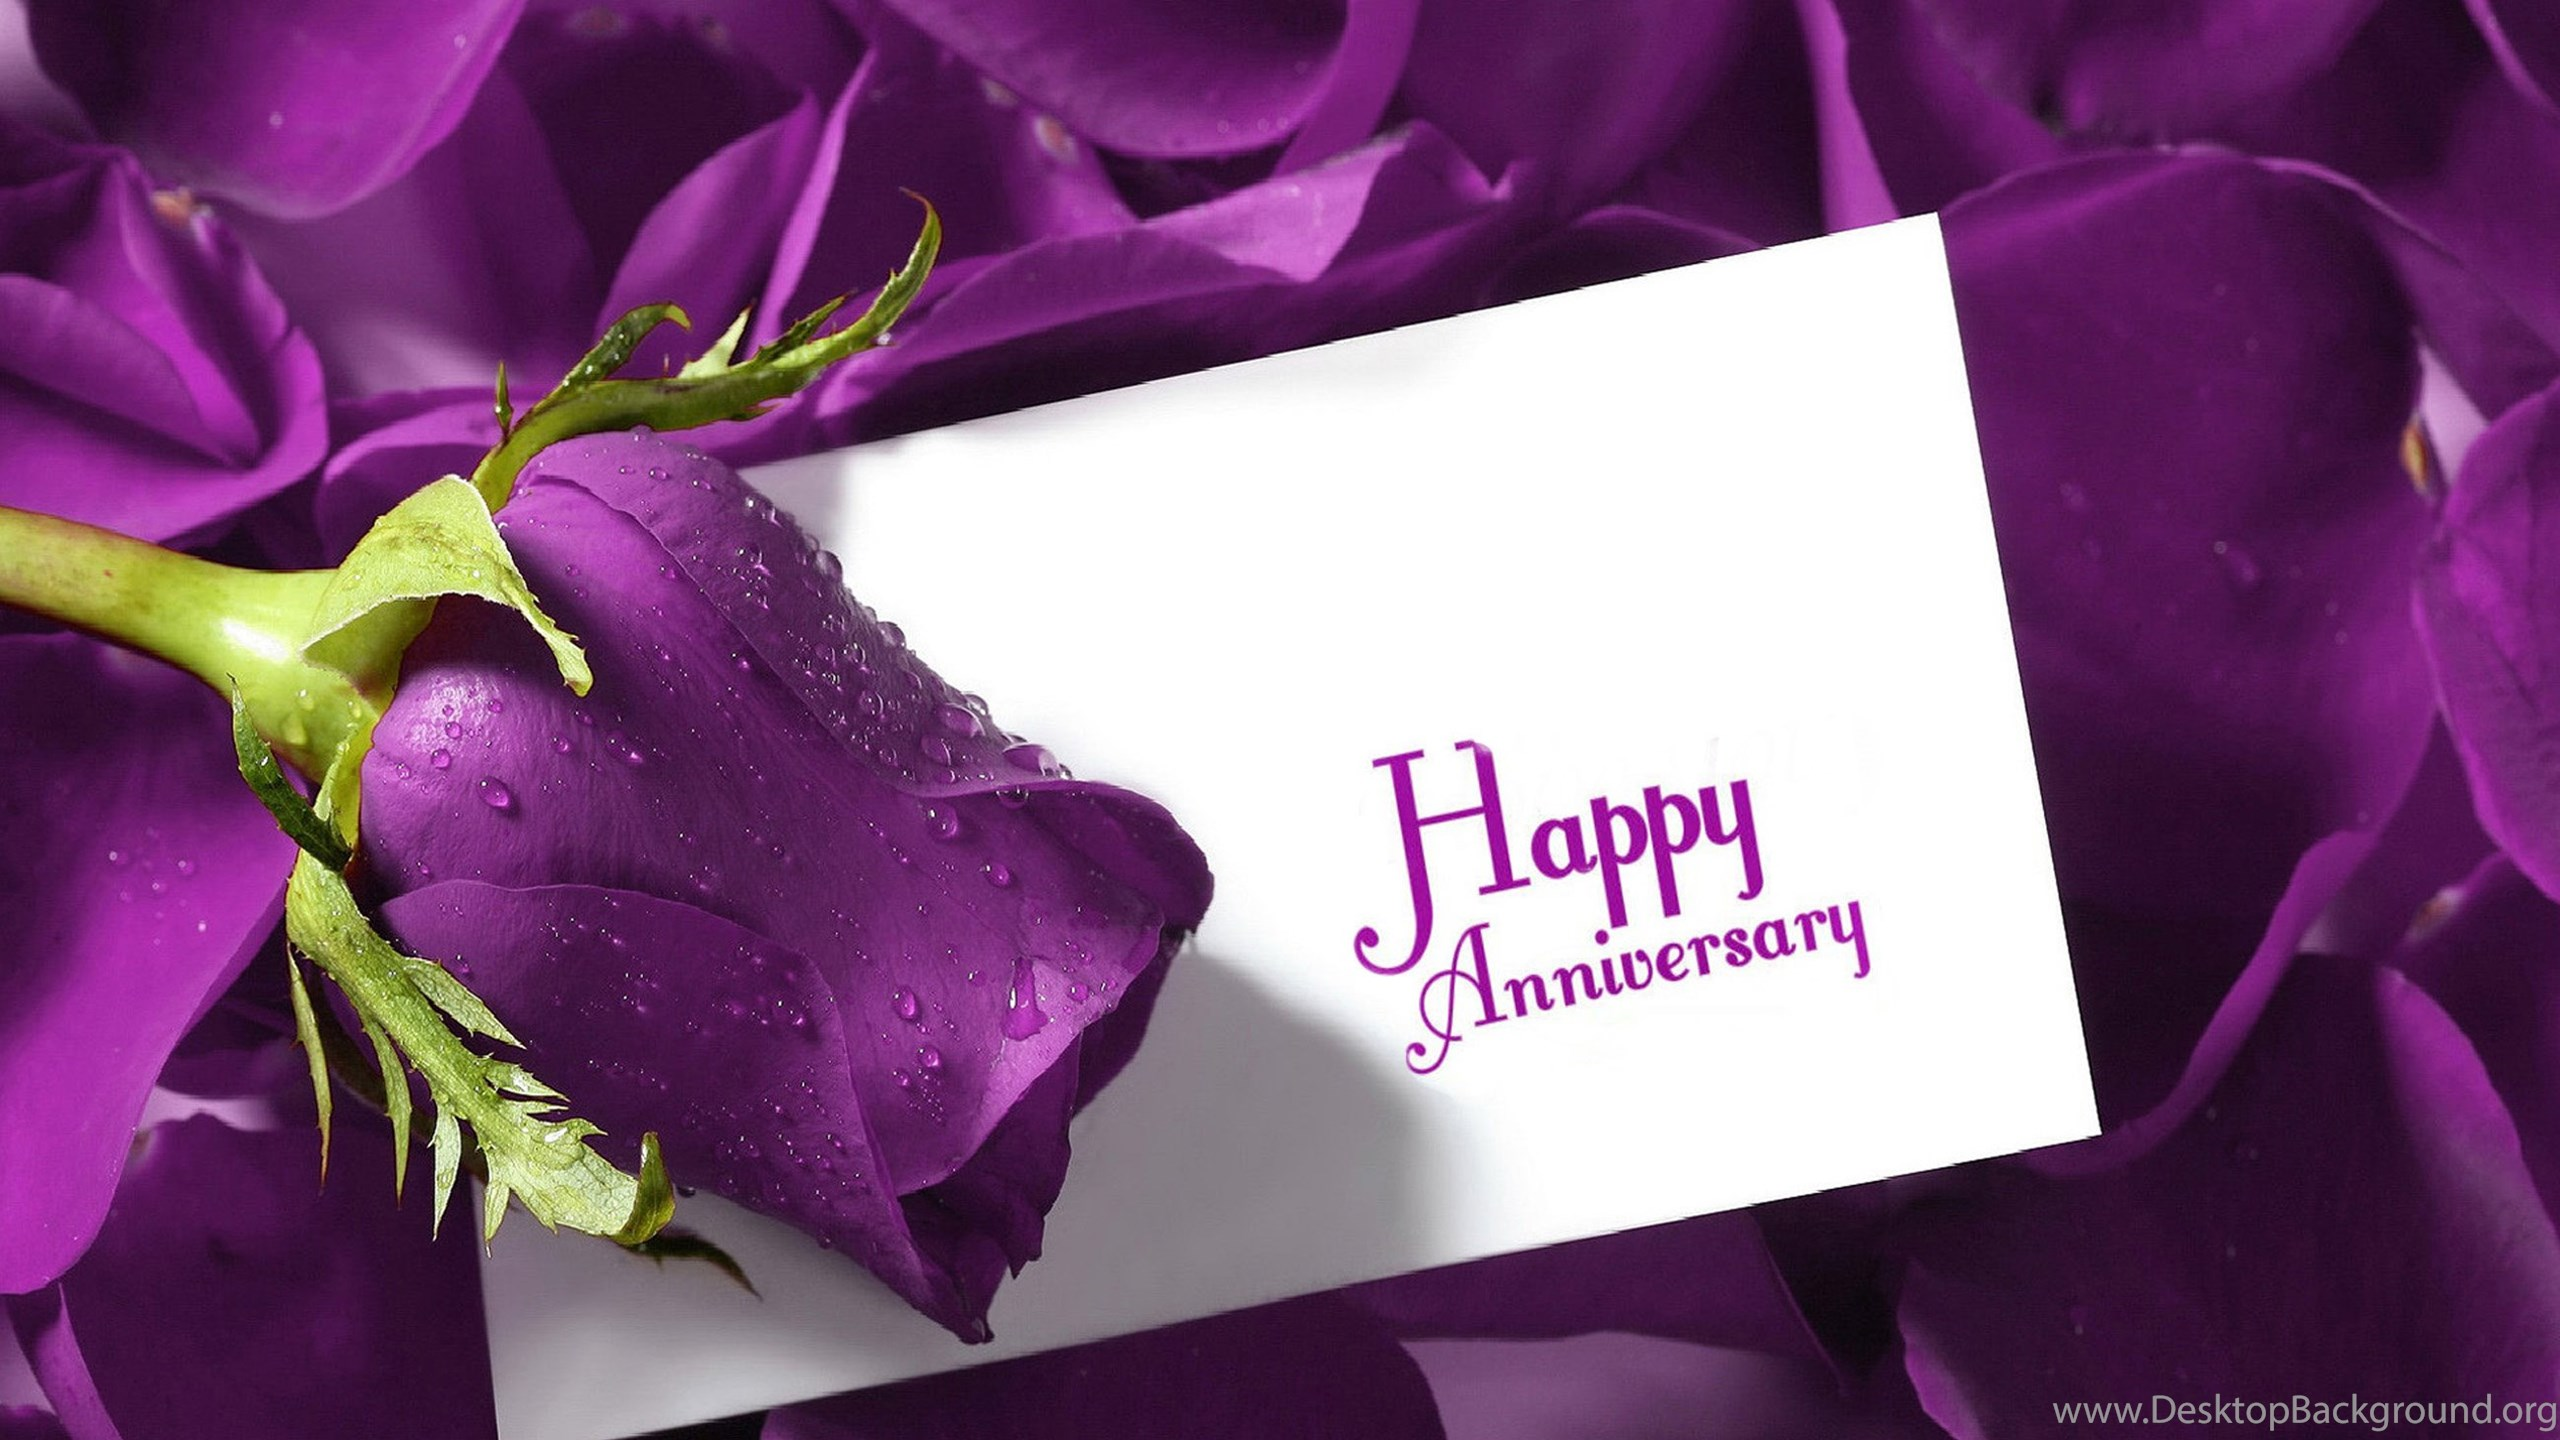 Happy Anniversary Wishes Hd Wallpapers Desktop Background